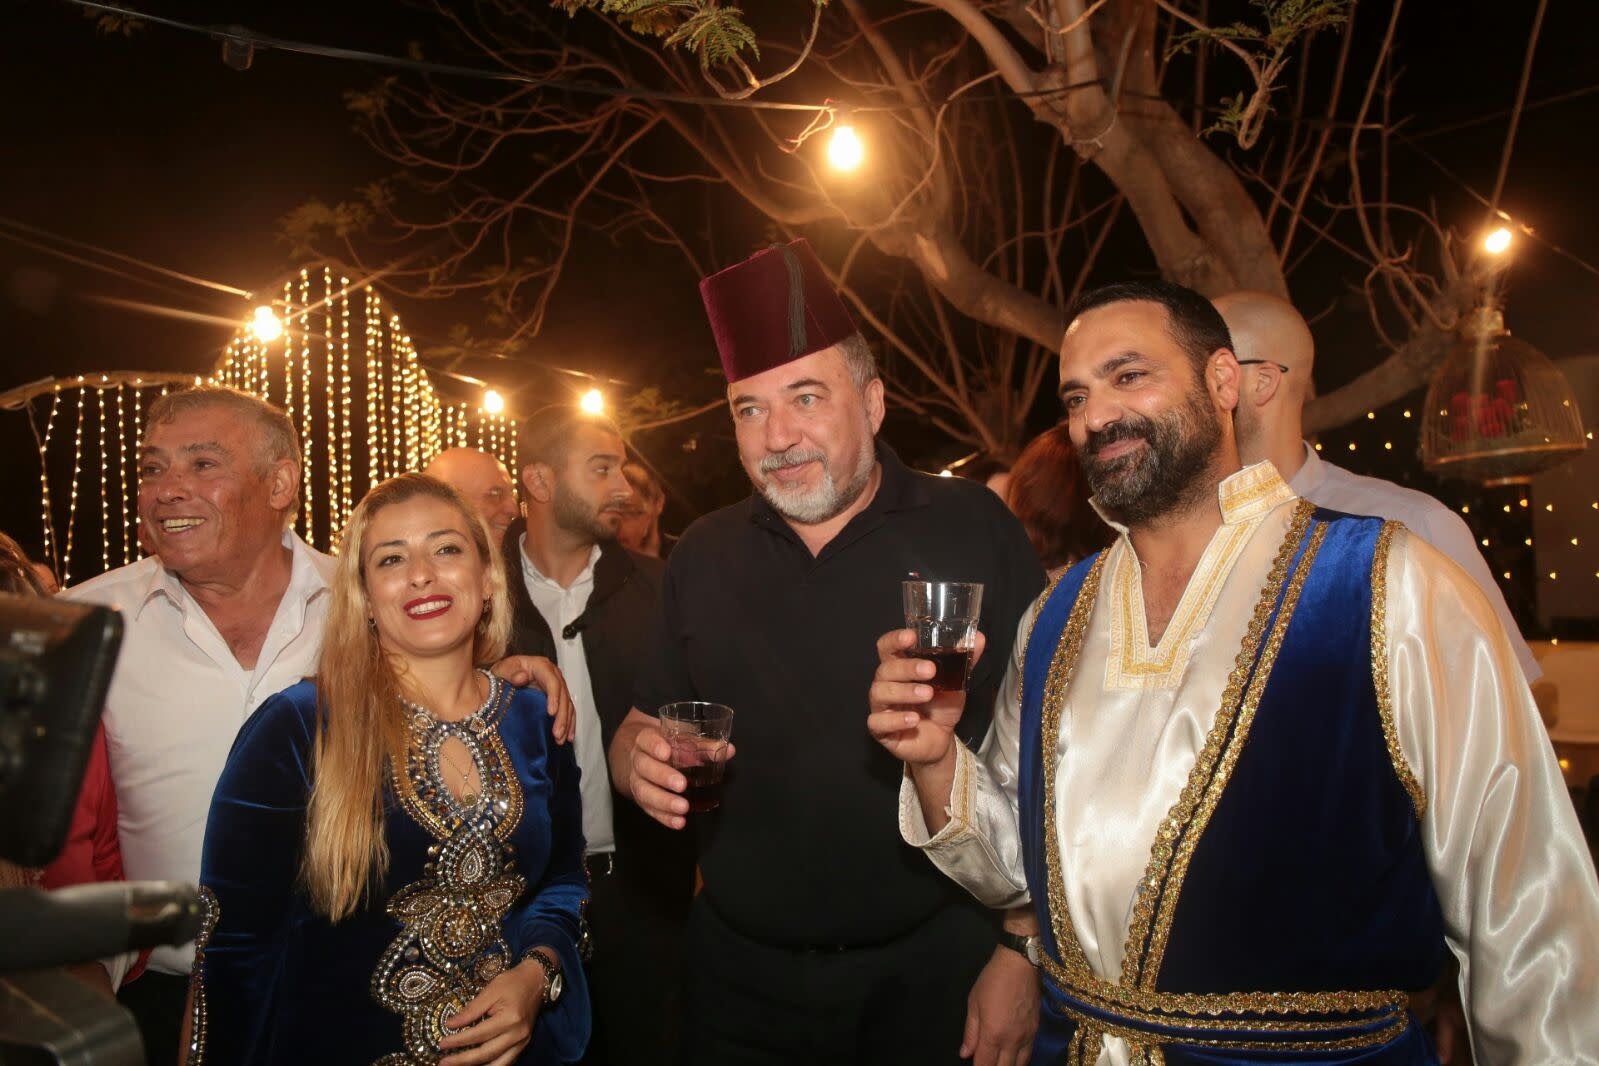 Defense Minister Avigdor Liberman at the Yisrael Beytenu Mimouna in Ashdod, April 2018 (COURTESY YISRAEL BEYTENU)